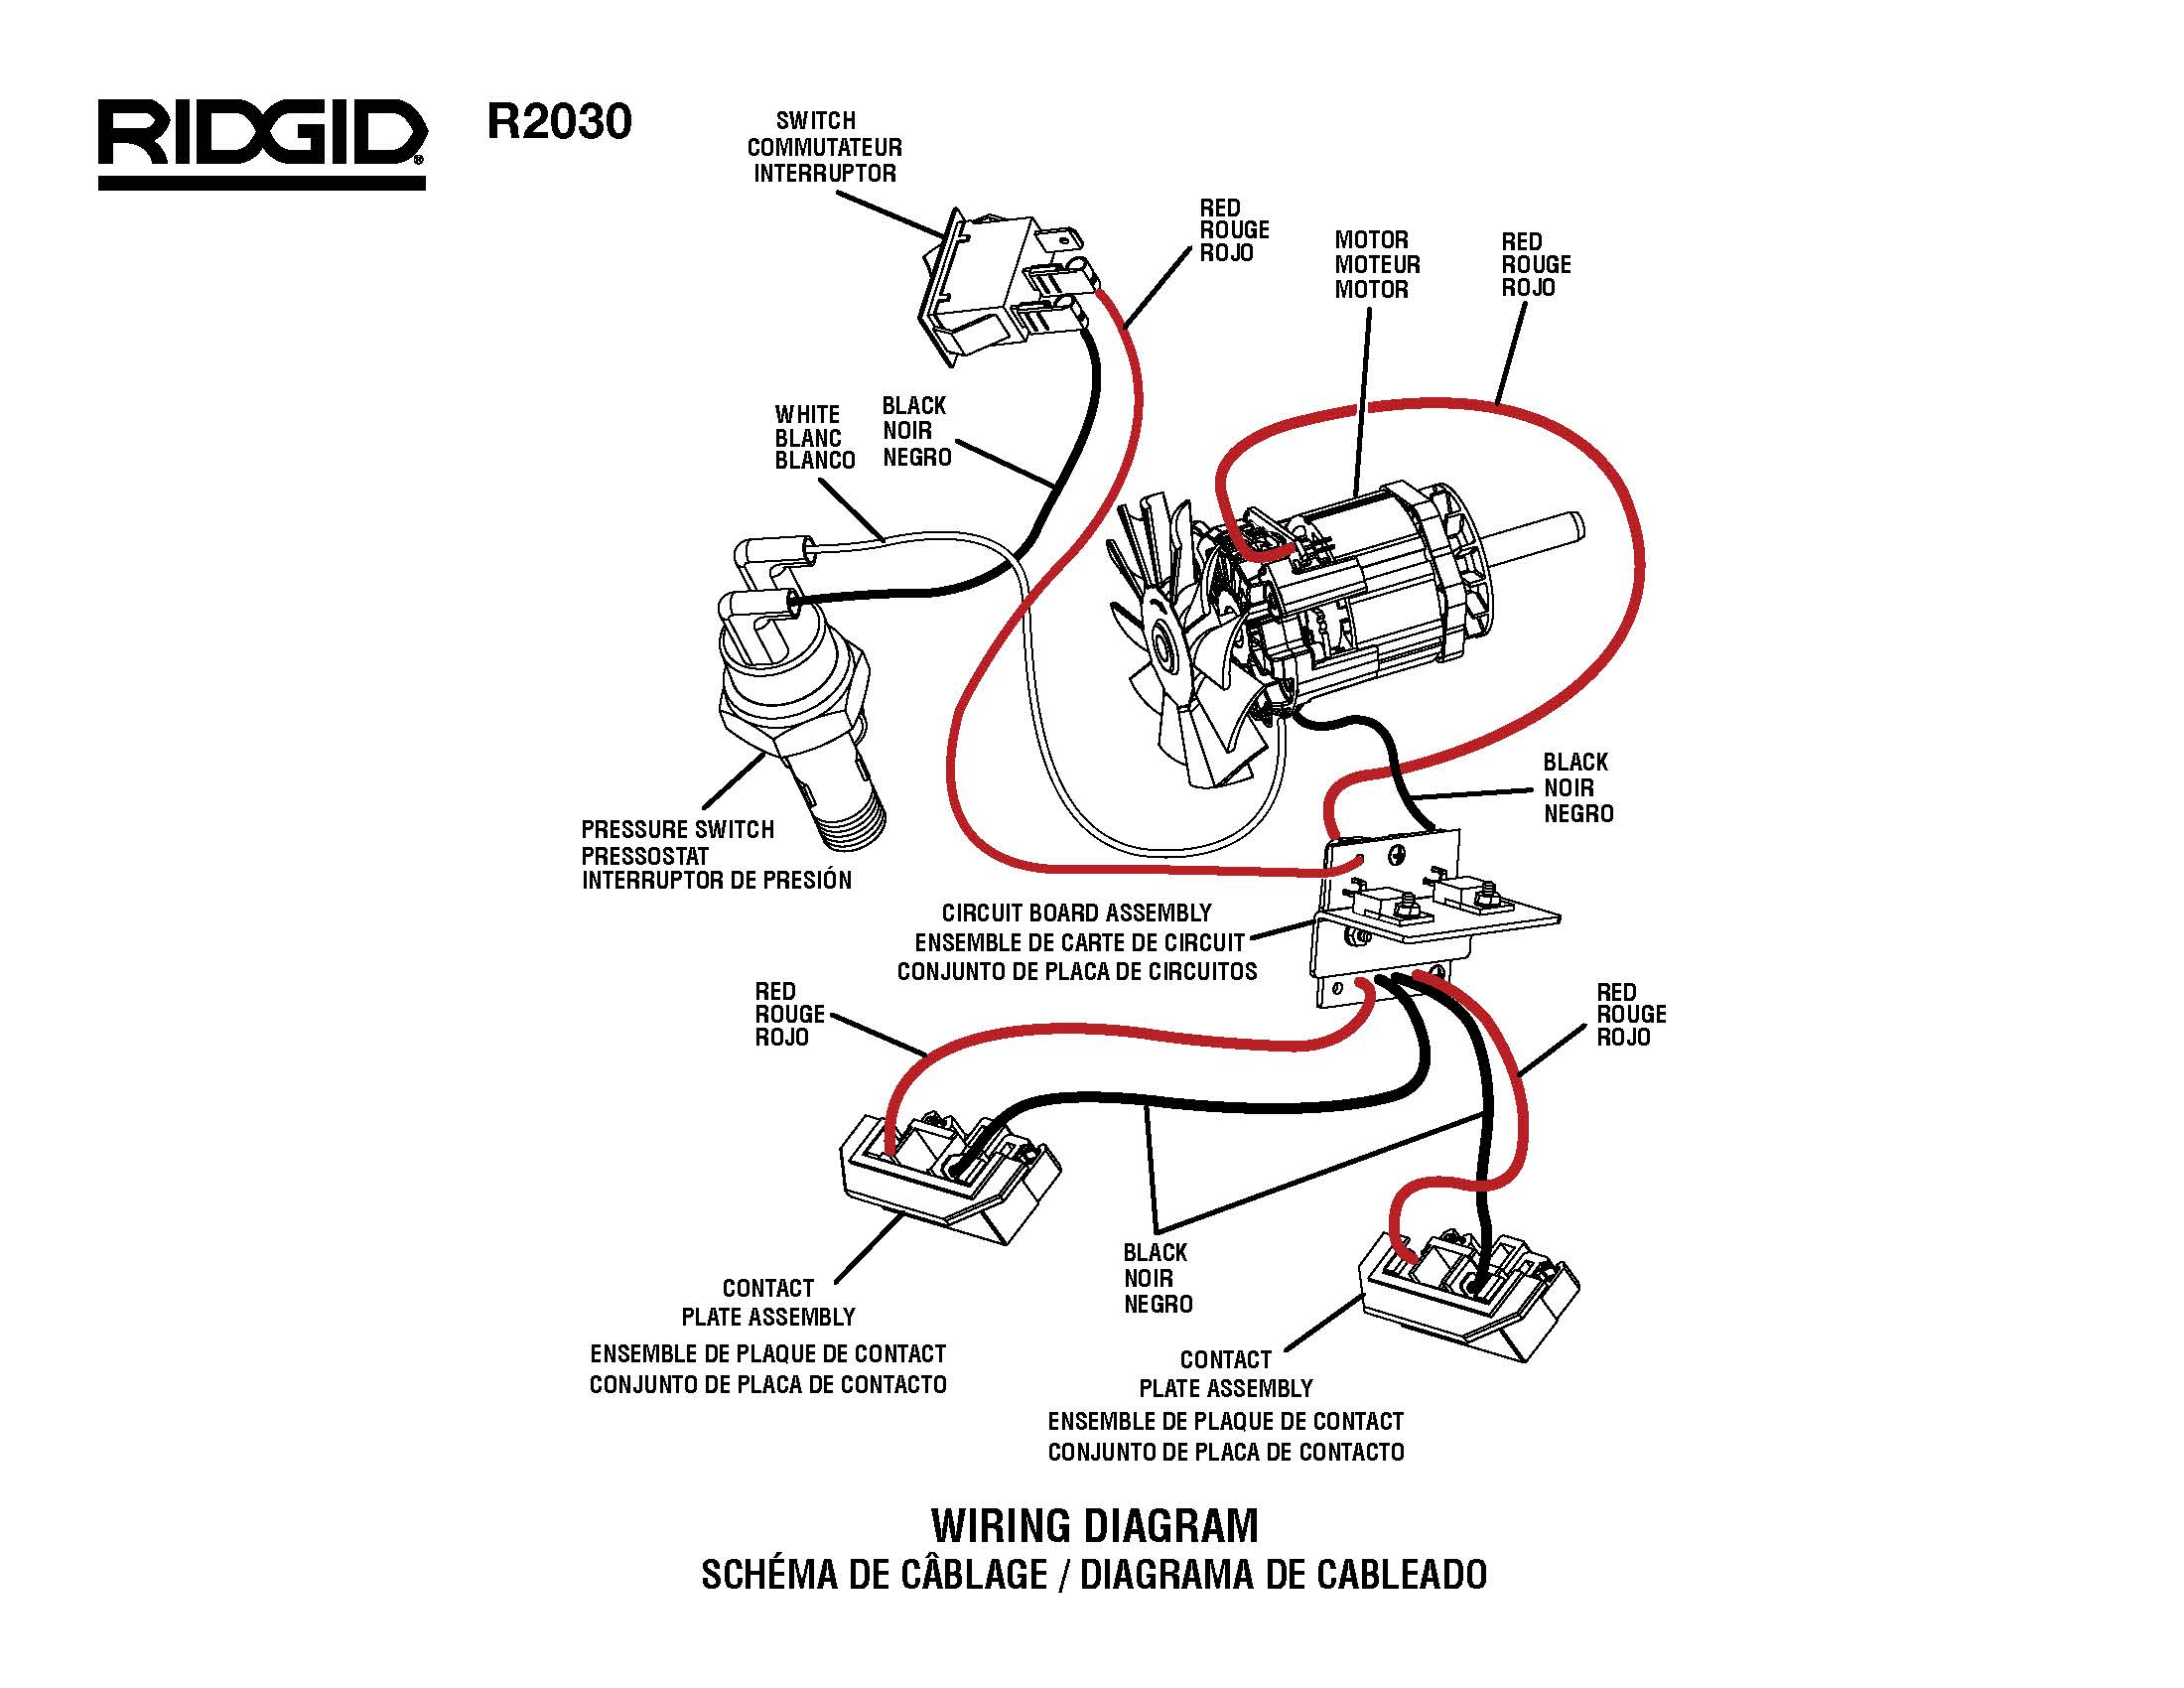 R0230_IPB_Wiring_Diagram Ingersoll Rand Sd D Wiring Diagram on ingersoll rand sd45, ingersoll rand sd40d, ingersoll rand roller specifications, ingersoll rand sd100, ingersoll rand sd45d, ingersoll rand construction equipment,